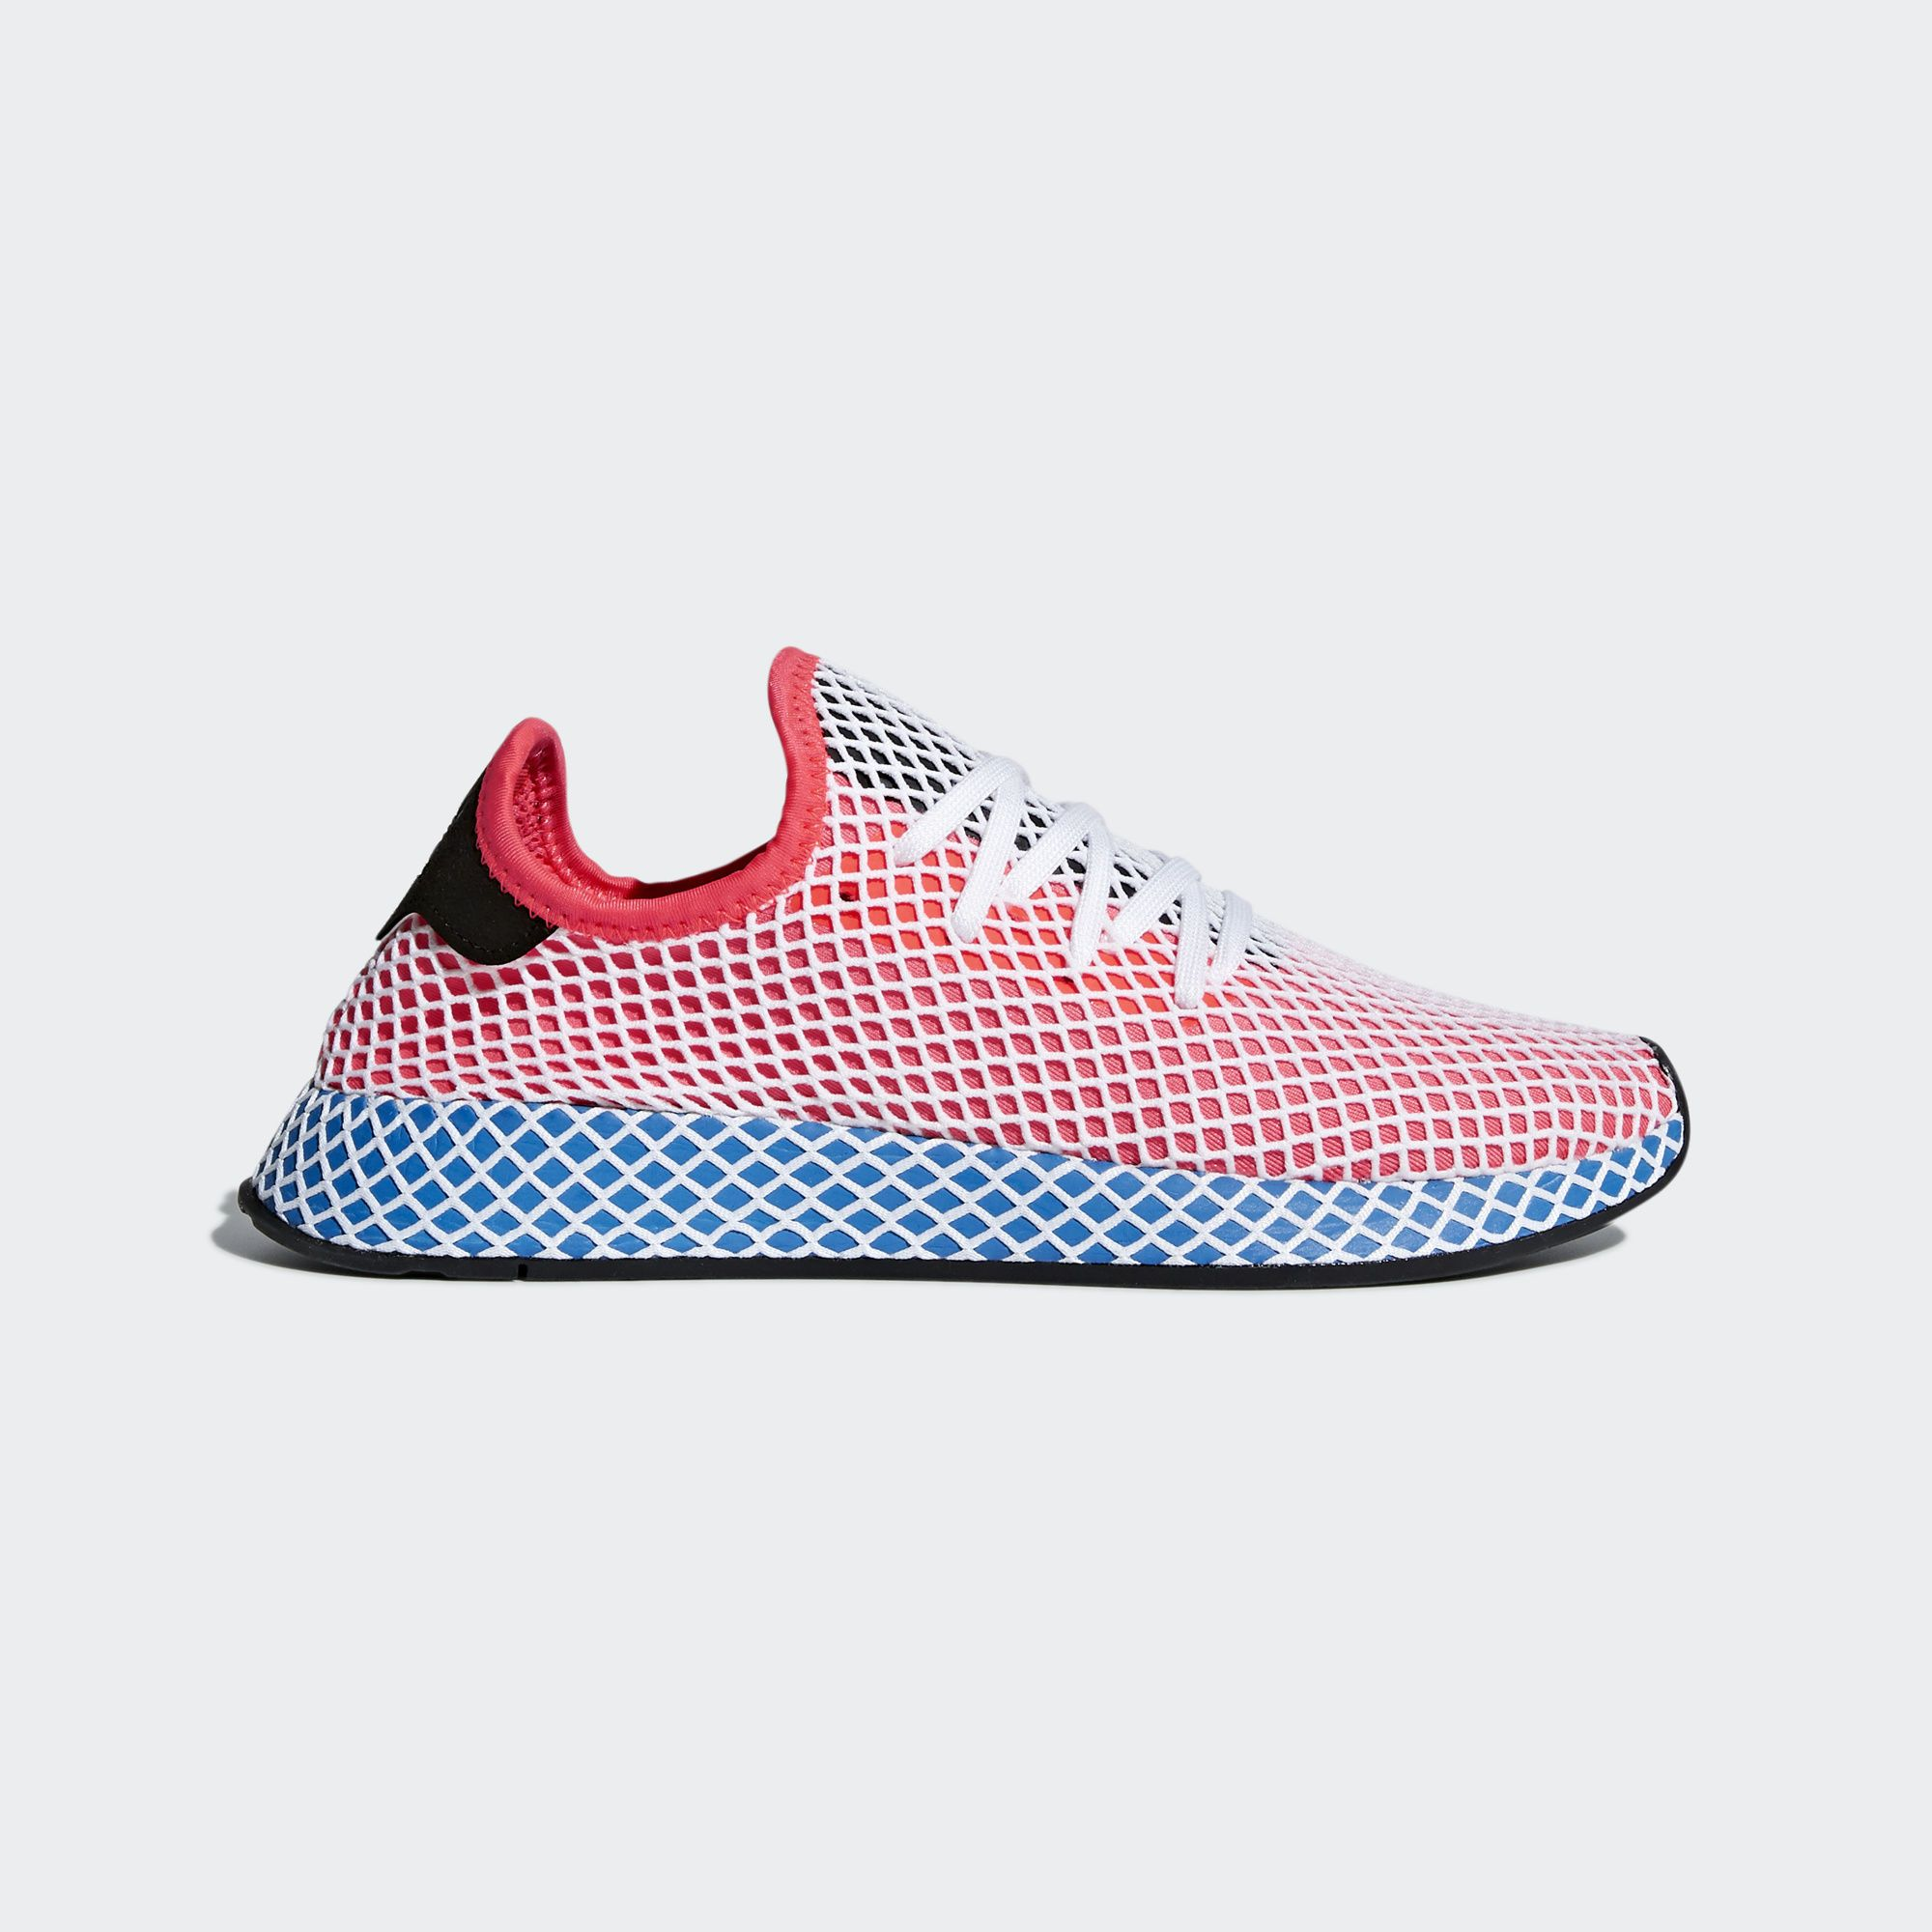 best service 01a21 a539f Deerupt is proof that minimalism can be bold. These shoes have an  ultra-flexible mesh upper covered in a layer of stretch grid webbing.